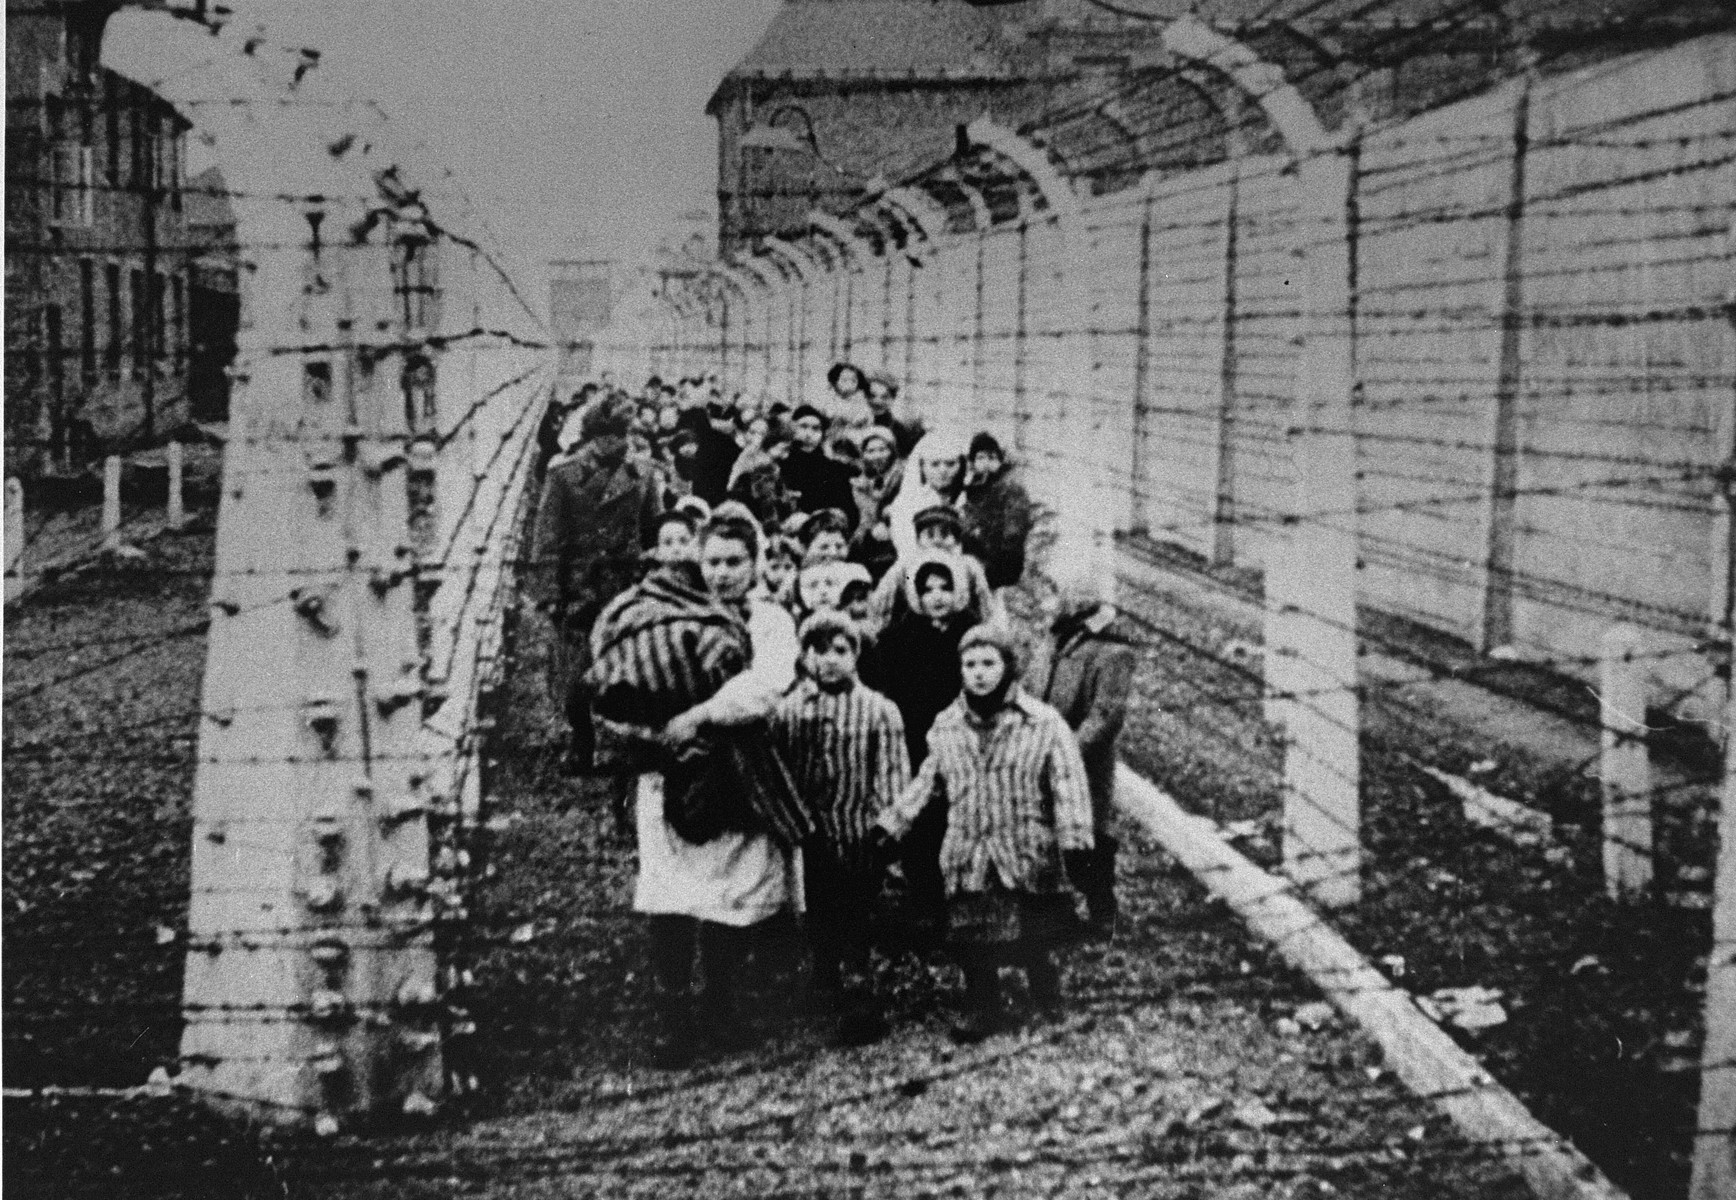 Wearing adult-size prisoner jackets, child survivors of Auschwitz are led by relief workers and Soviet soldiers through a narrow passage between two barbed-wire fences.  Eva Mozes is standing next to the nurse.  Holding her hand is her twin sister Miriam. Behind them in white pointed hats are Judy and Lea Csenghery,  STILL PHOTOGRAPH FROM THE SOVIET FILM of the liberation of Auschwitz, taken by the film unit of the First Ukrainian Front.